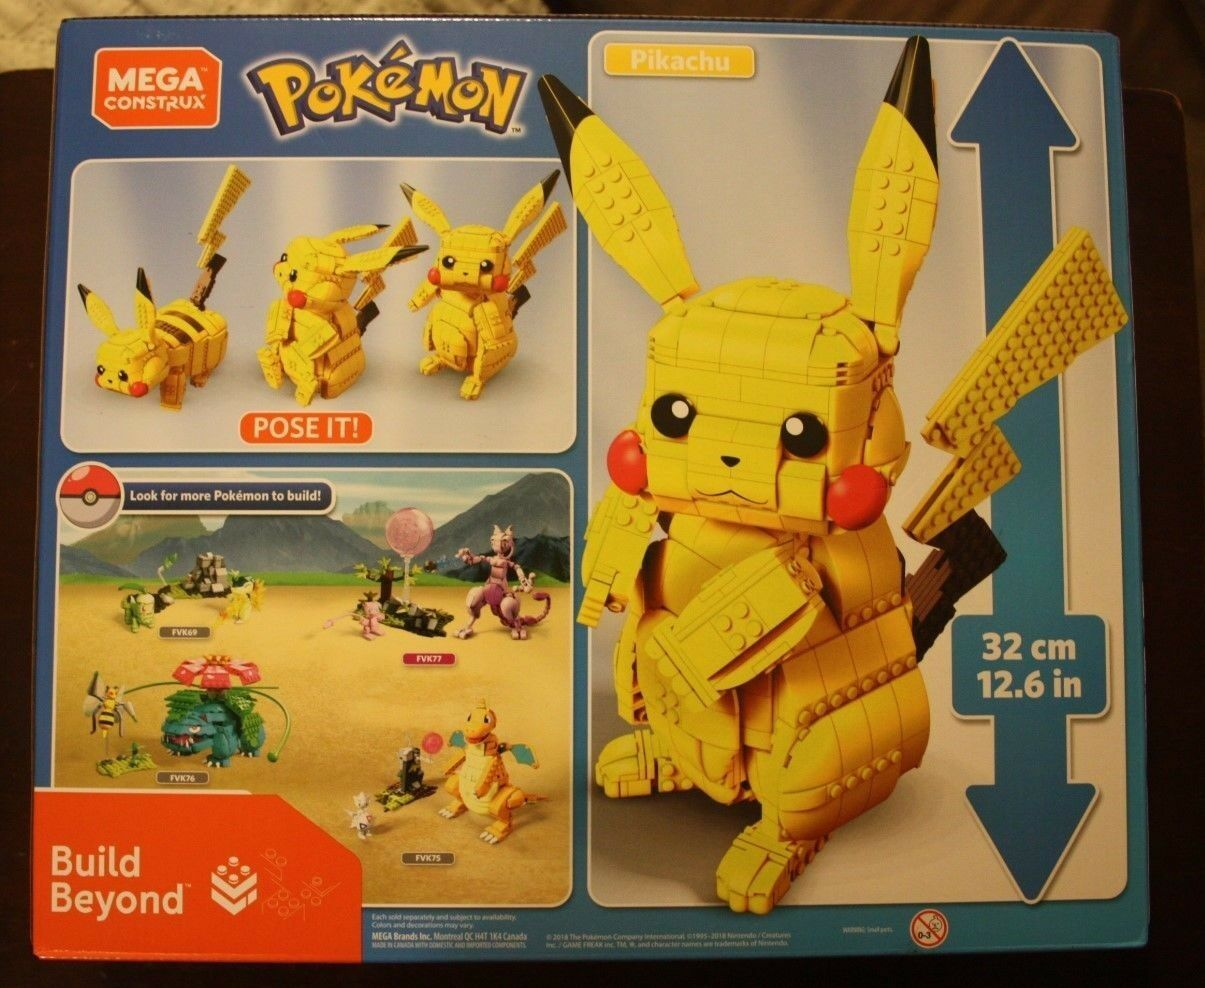 Mega Construx Pokemon Jumbo Pikachu NEW NEW NEW IN BOX POSE IT 32cm 12.6 INCHES SOLD OUT 947779